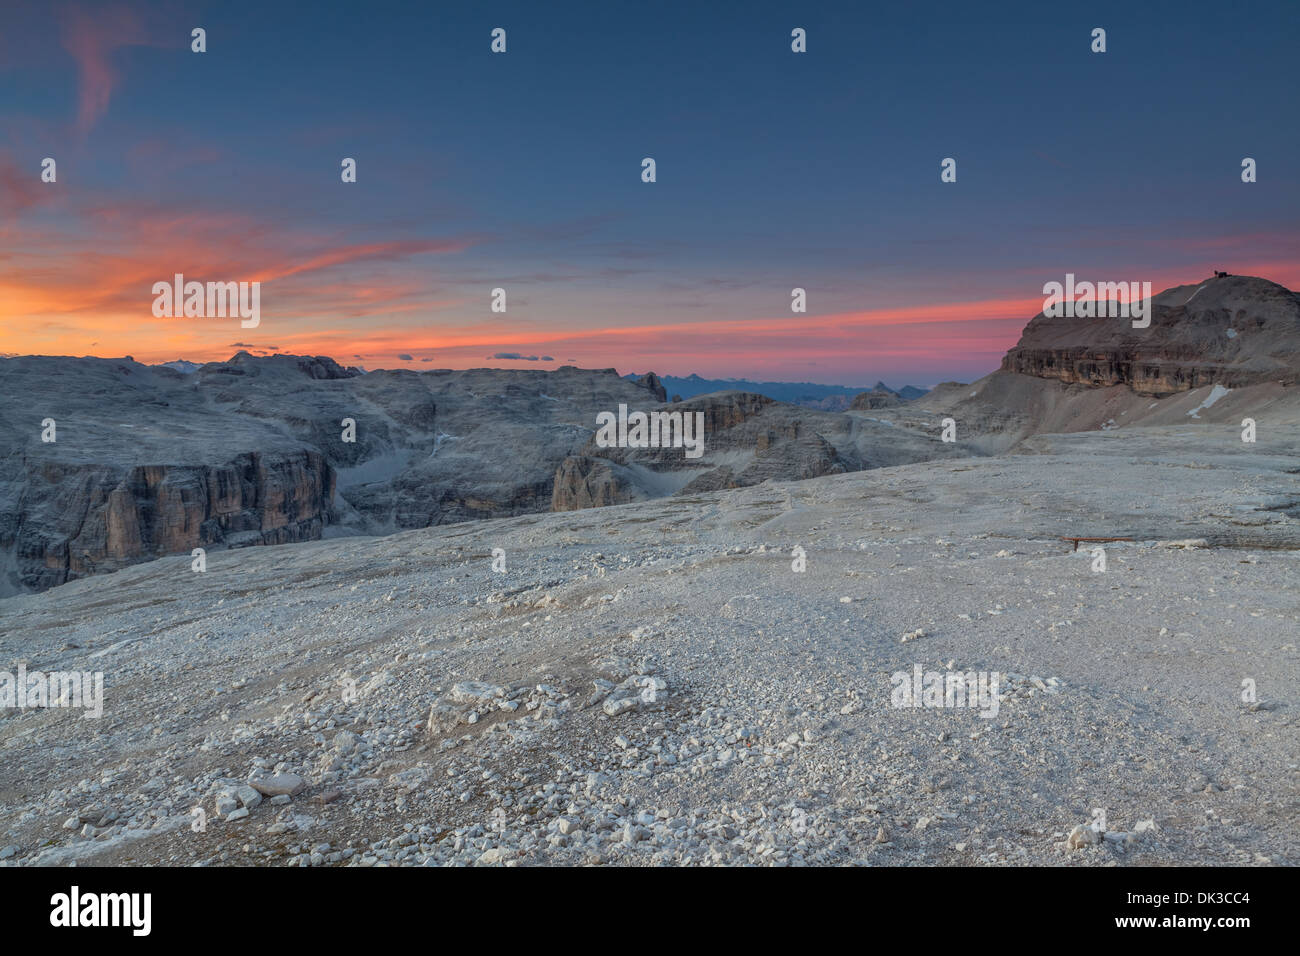 Sunset from Pordoi Sass in Dolomiti, Trentino, Italy - Stock Image